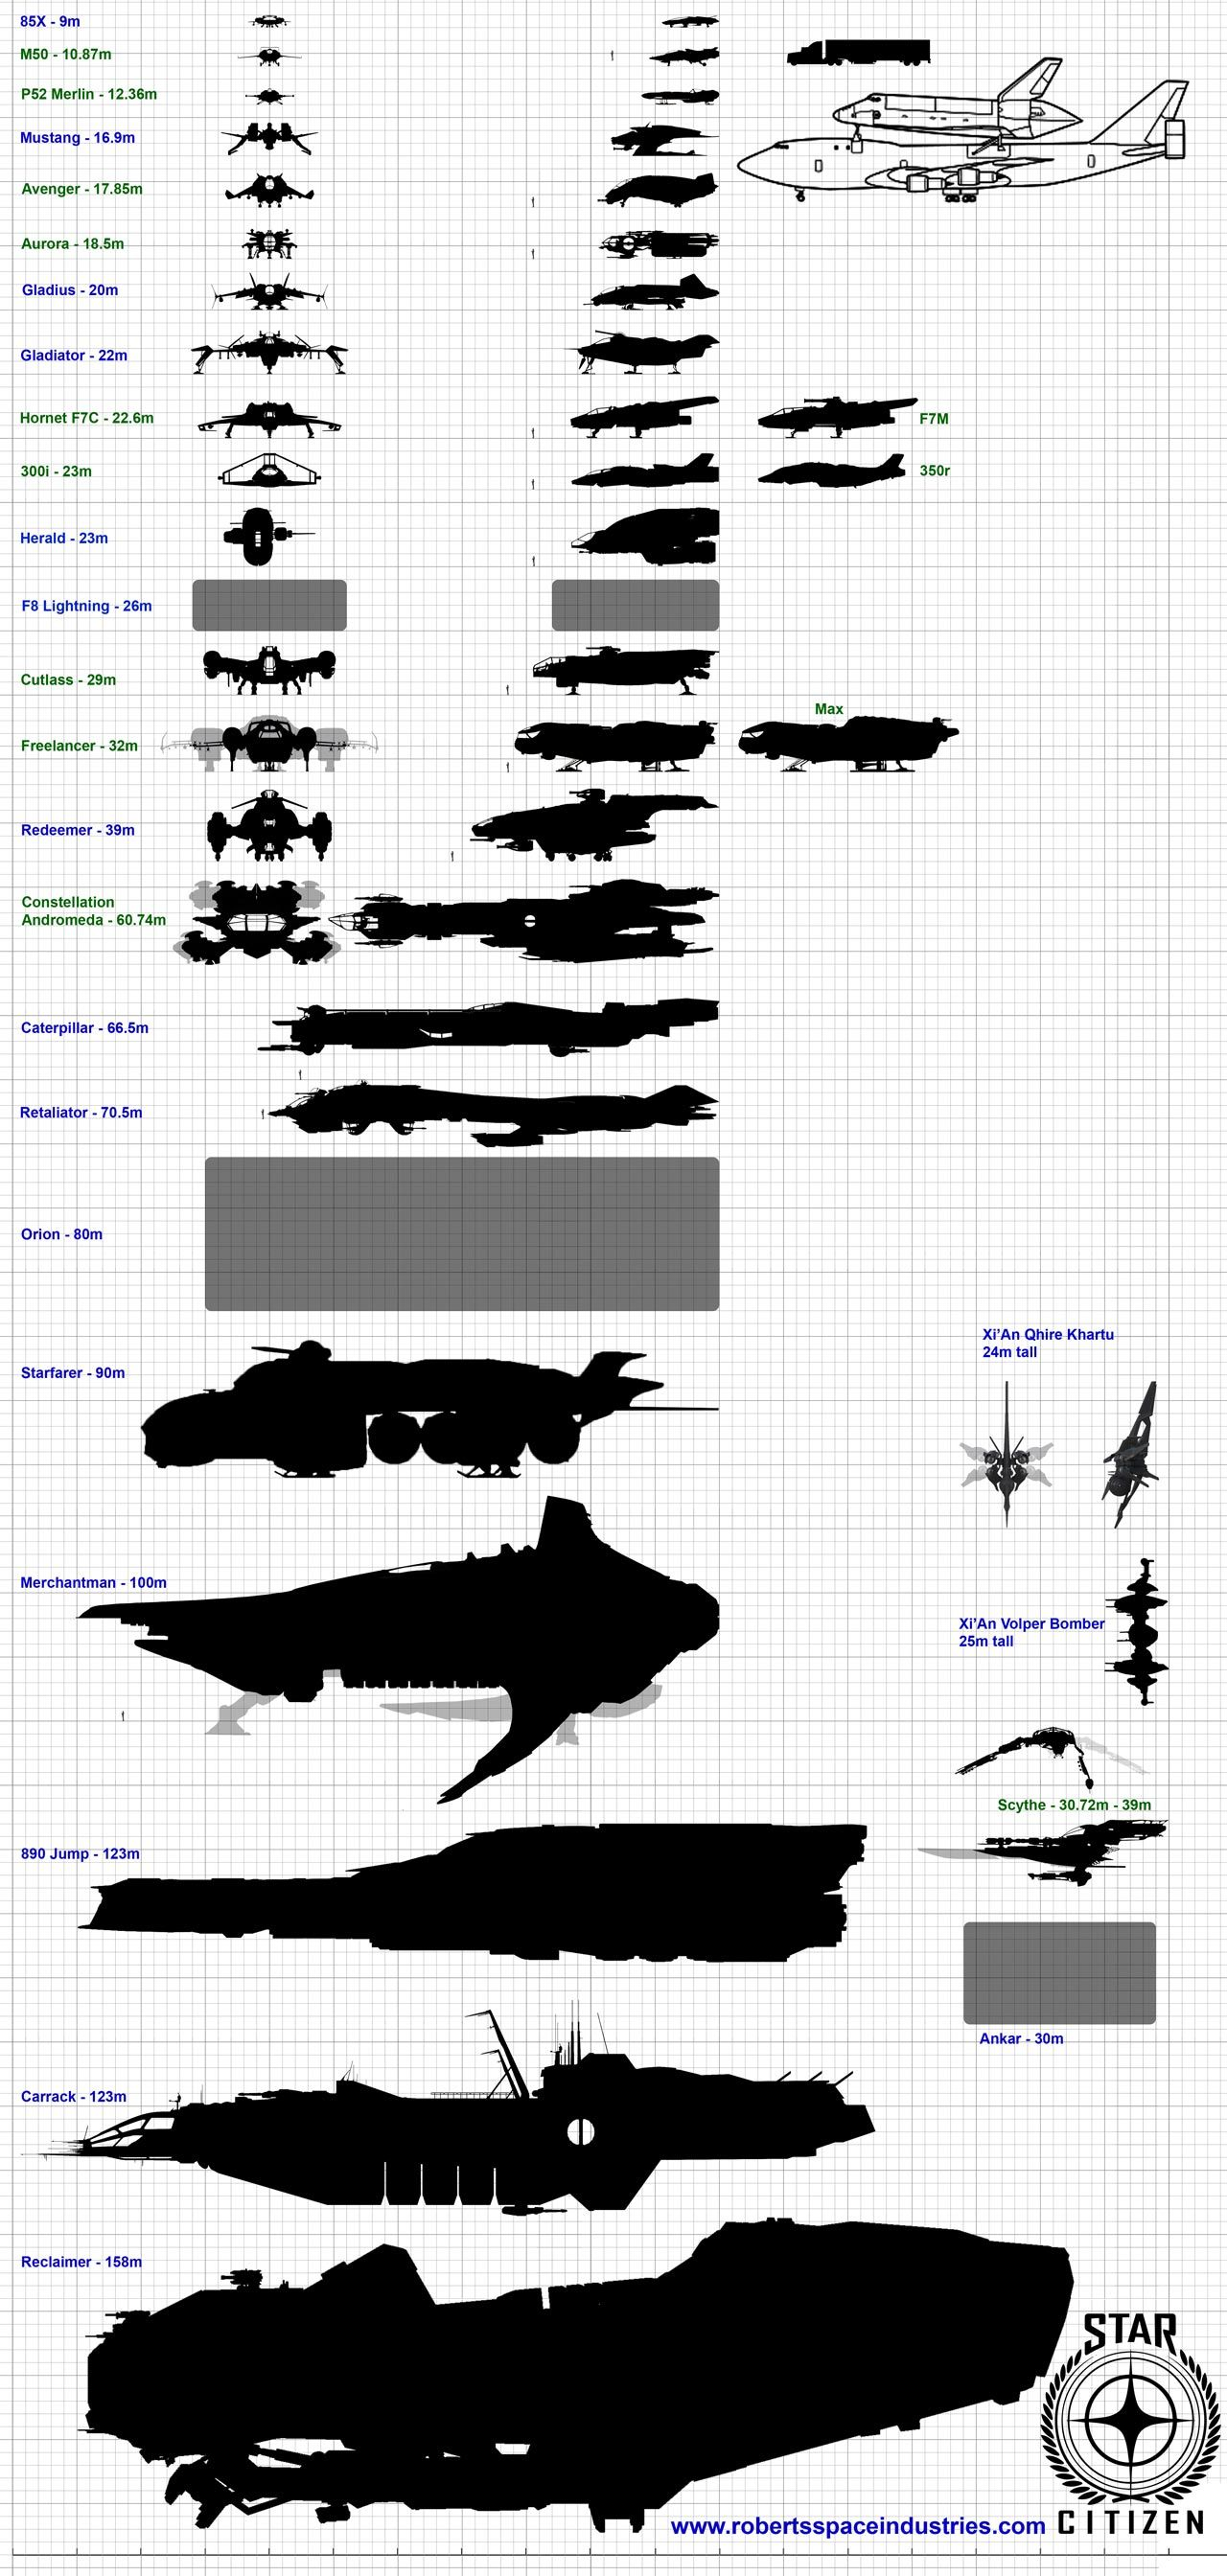 medium resolution of ship size comparison 1280 2688 to the sky pinterestship size comparison 1280